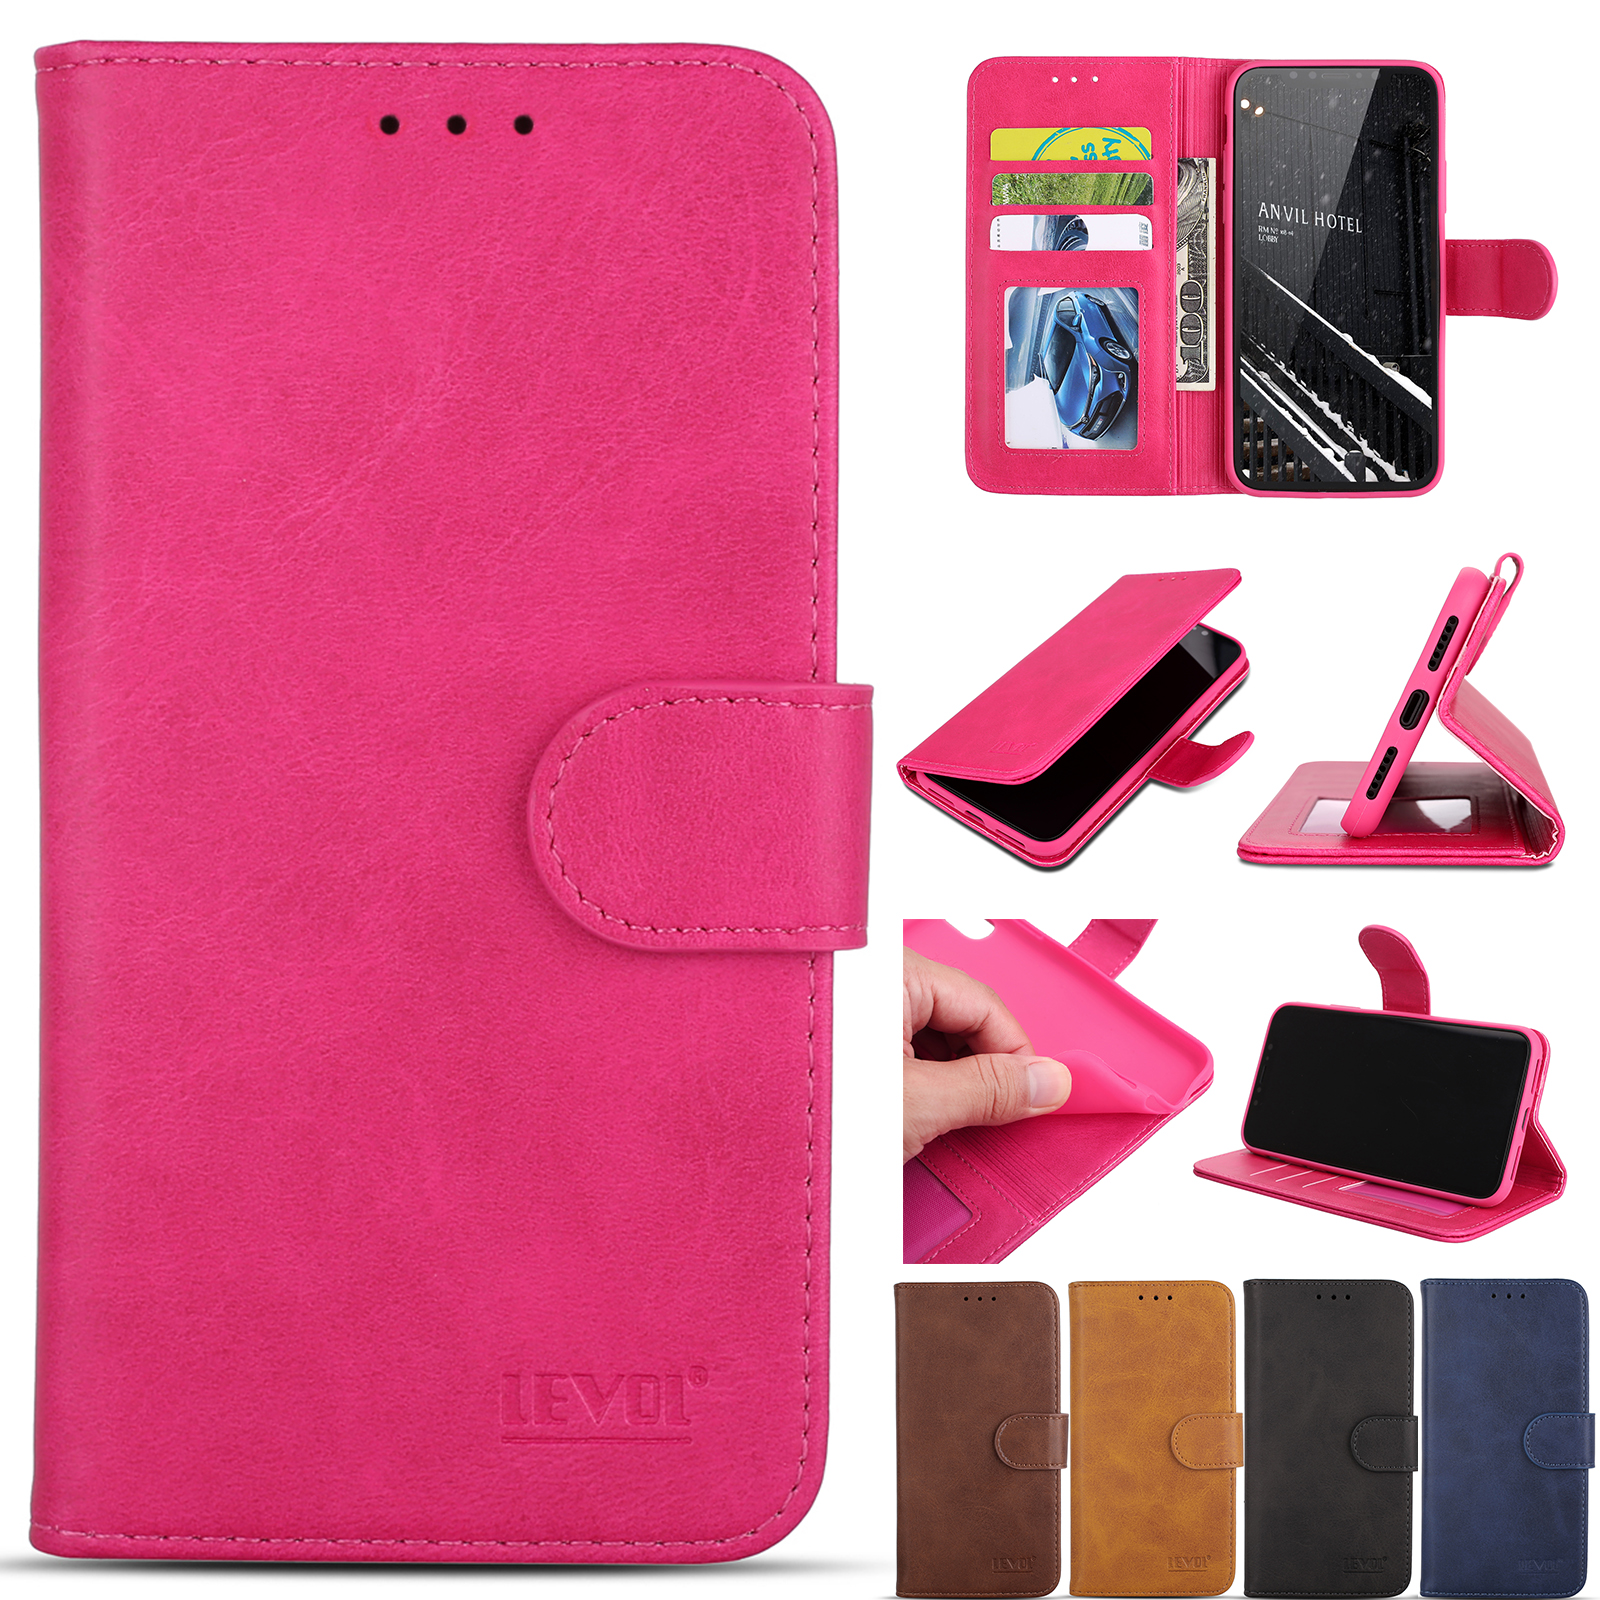 huge selection of 988ae 3c674 Details about Retro Leather Magnetic Flip Stand WalletCase Cover Fr Apple  iPhone X 8 7 6s Plus